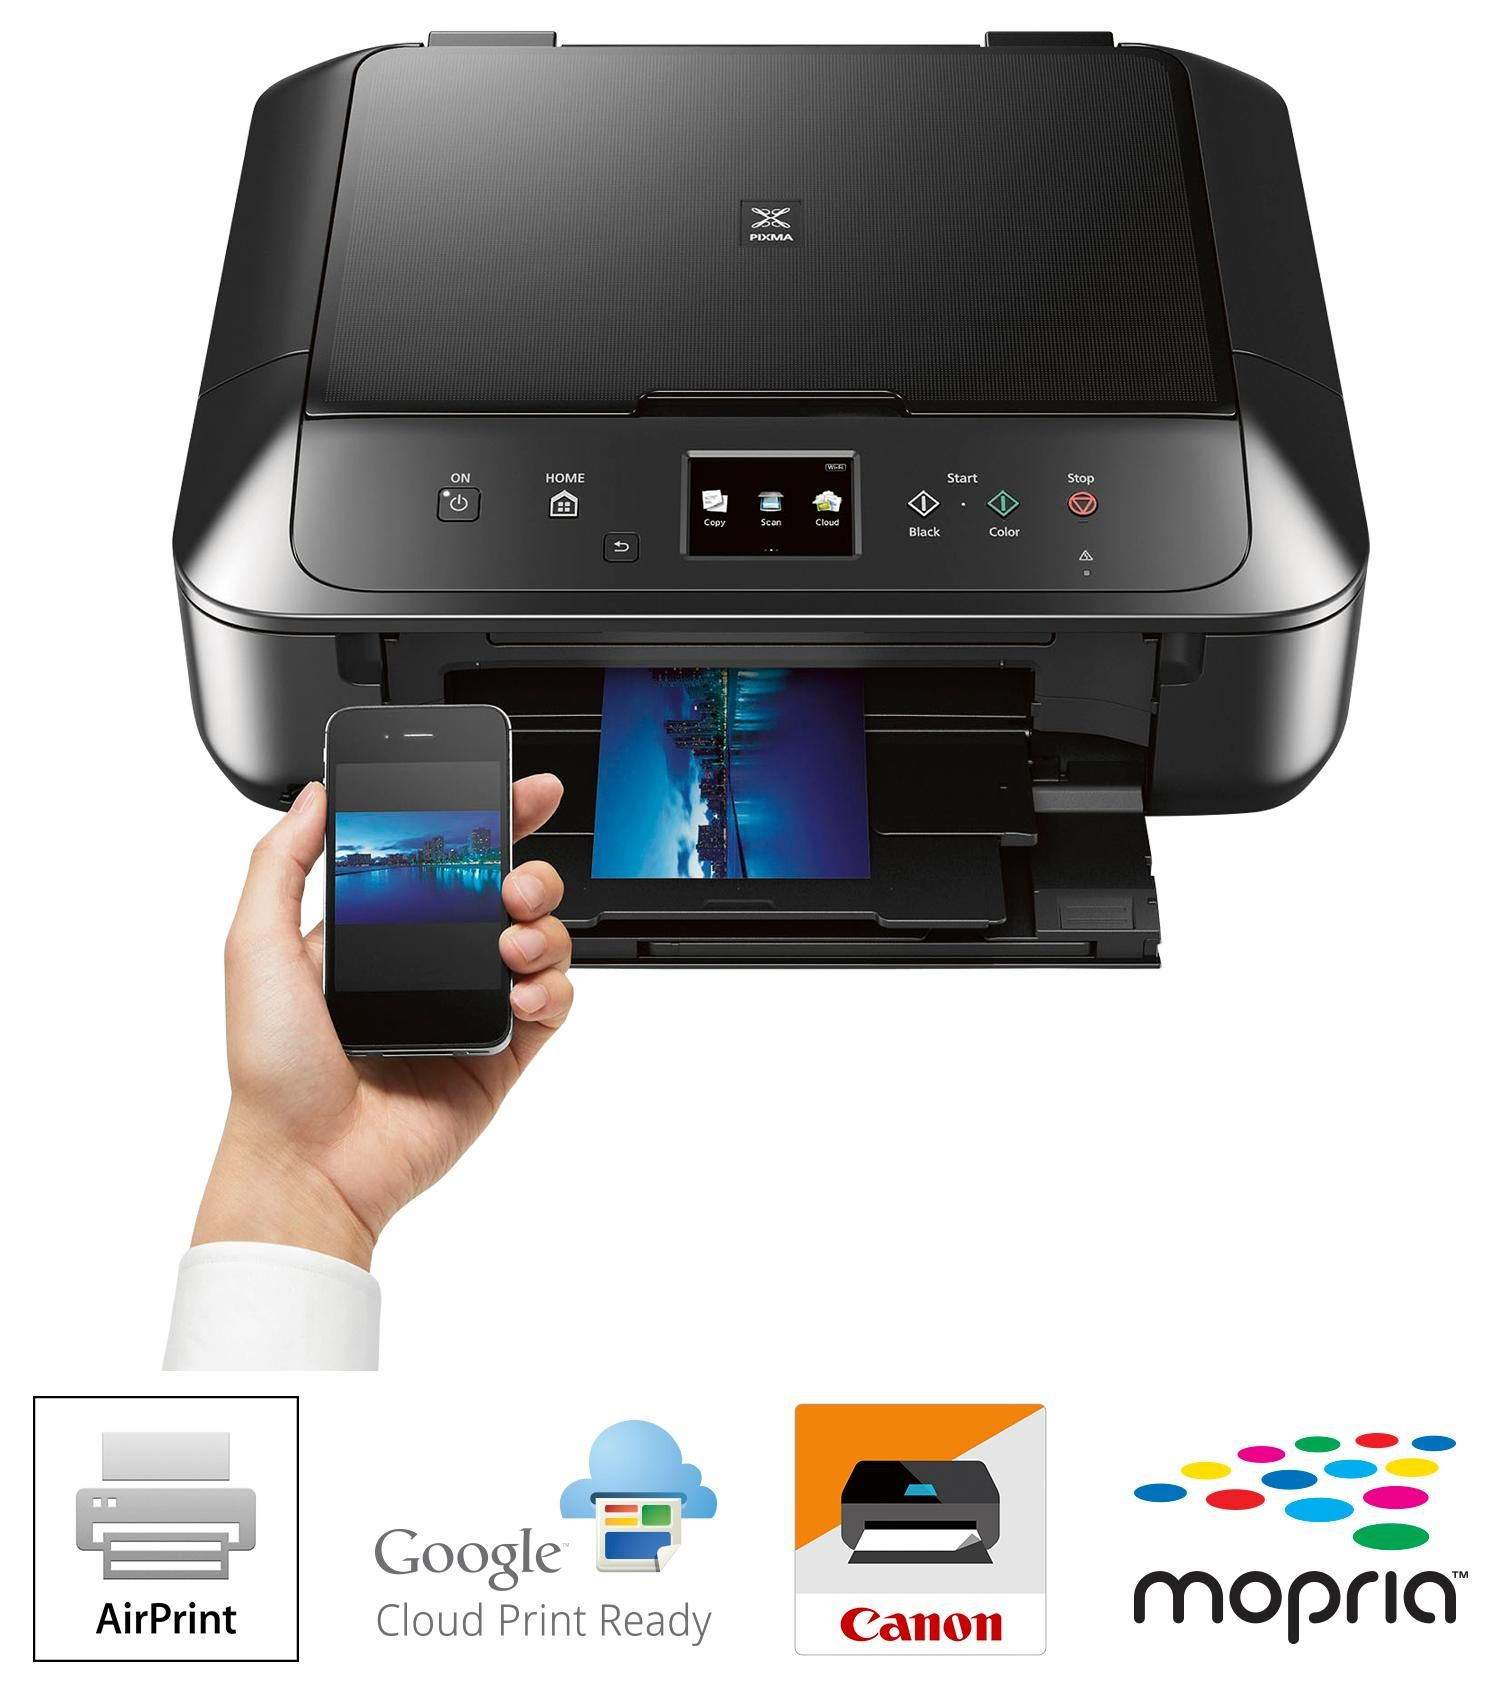 273cf64e869d Amazon.com: Canon MG6820 Wireless All-In-One Printer with Scanner and  Copier: Mobile and Tablet Printing with Airprint and Google Cloud Print  compatible, ...